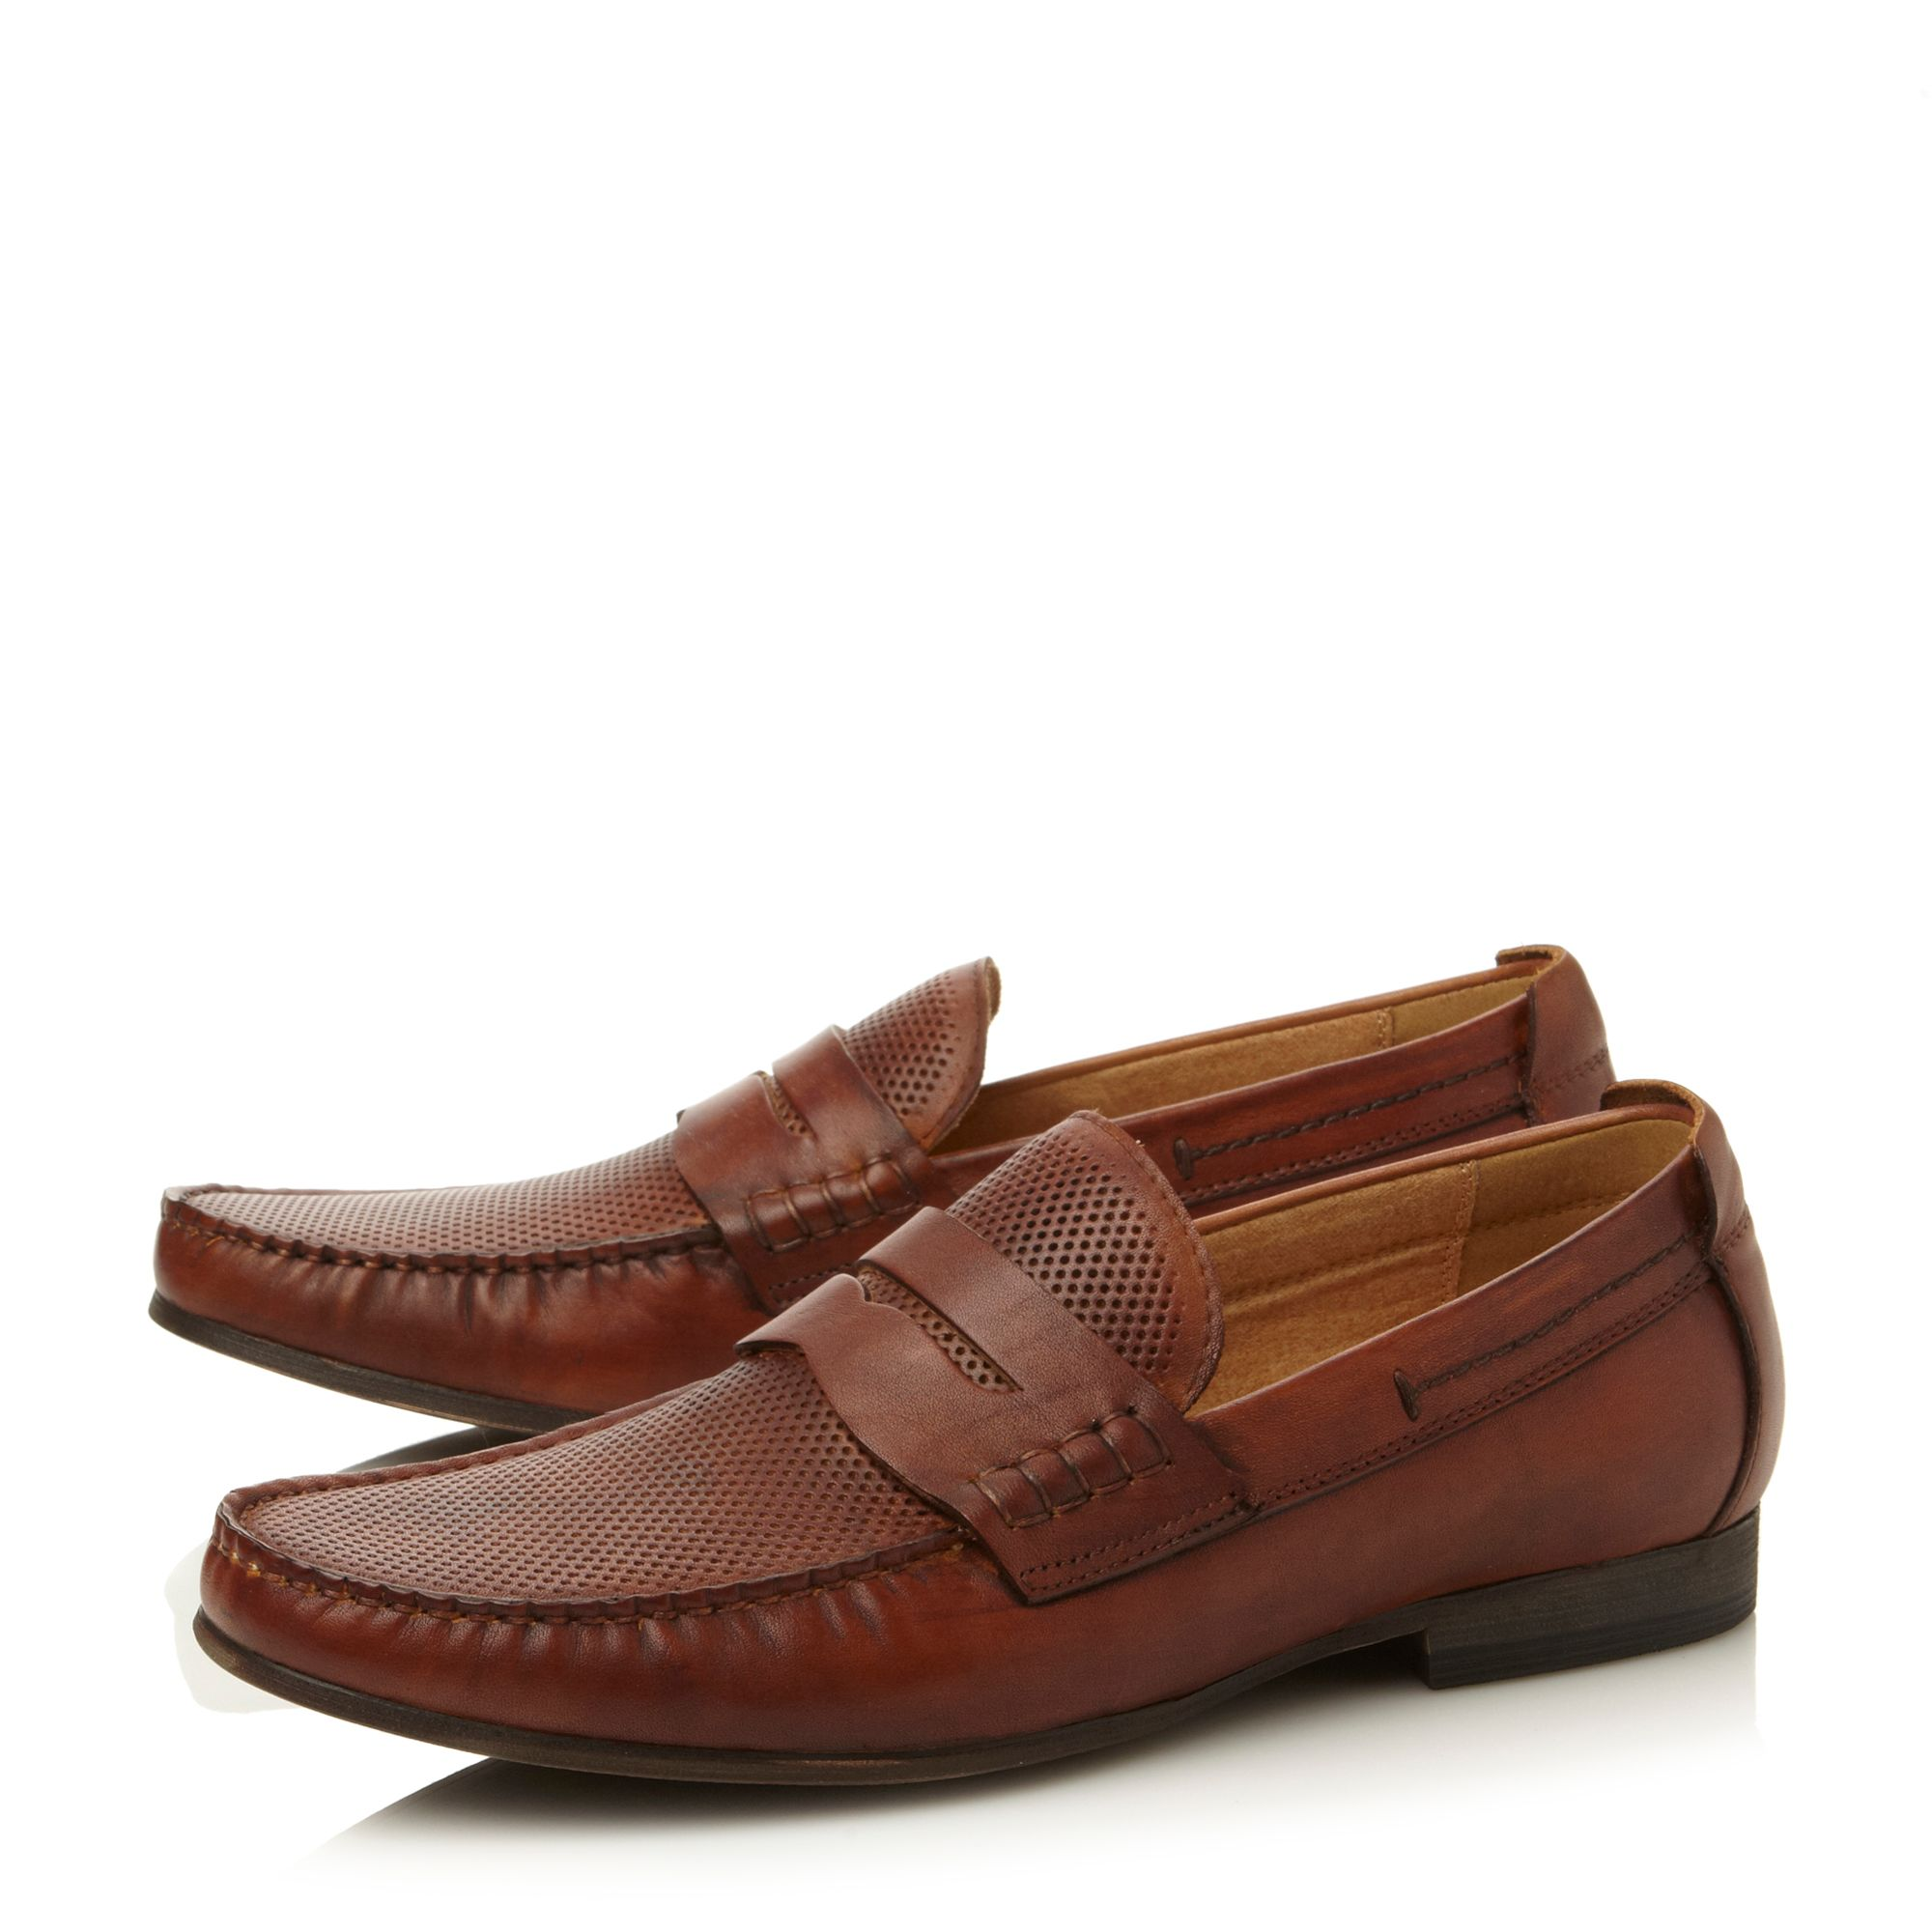 Wonder penny embossed mocc loafers